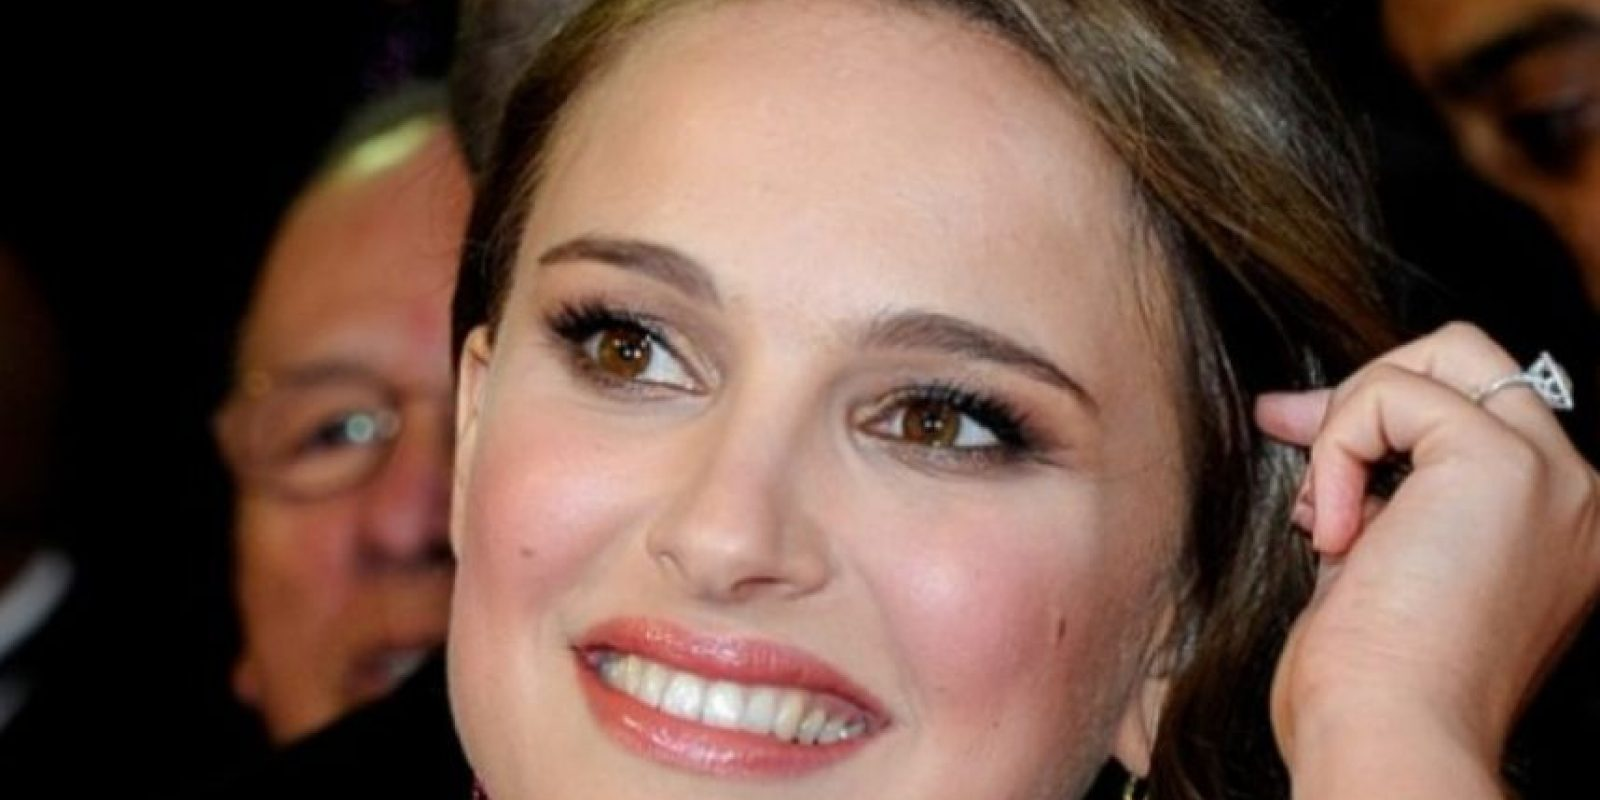 Natalie Portman no ha cambiado. Foto: Getty Images